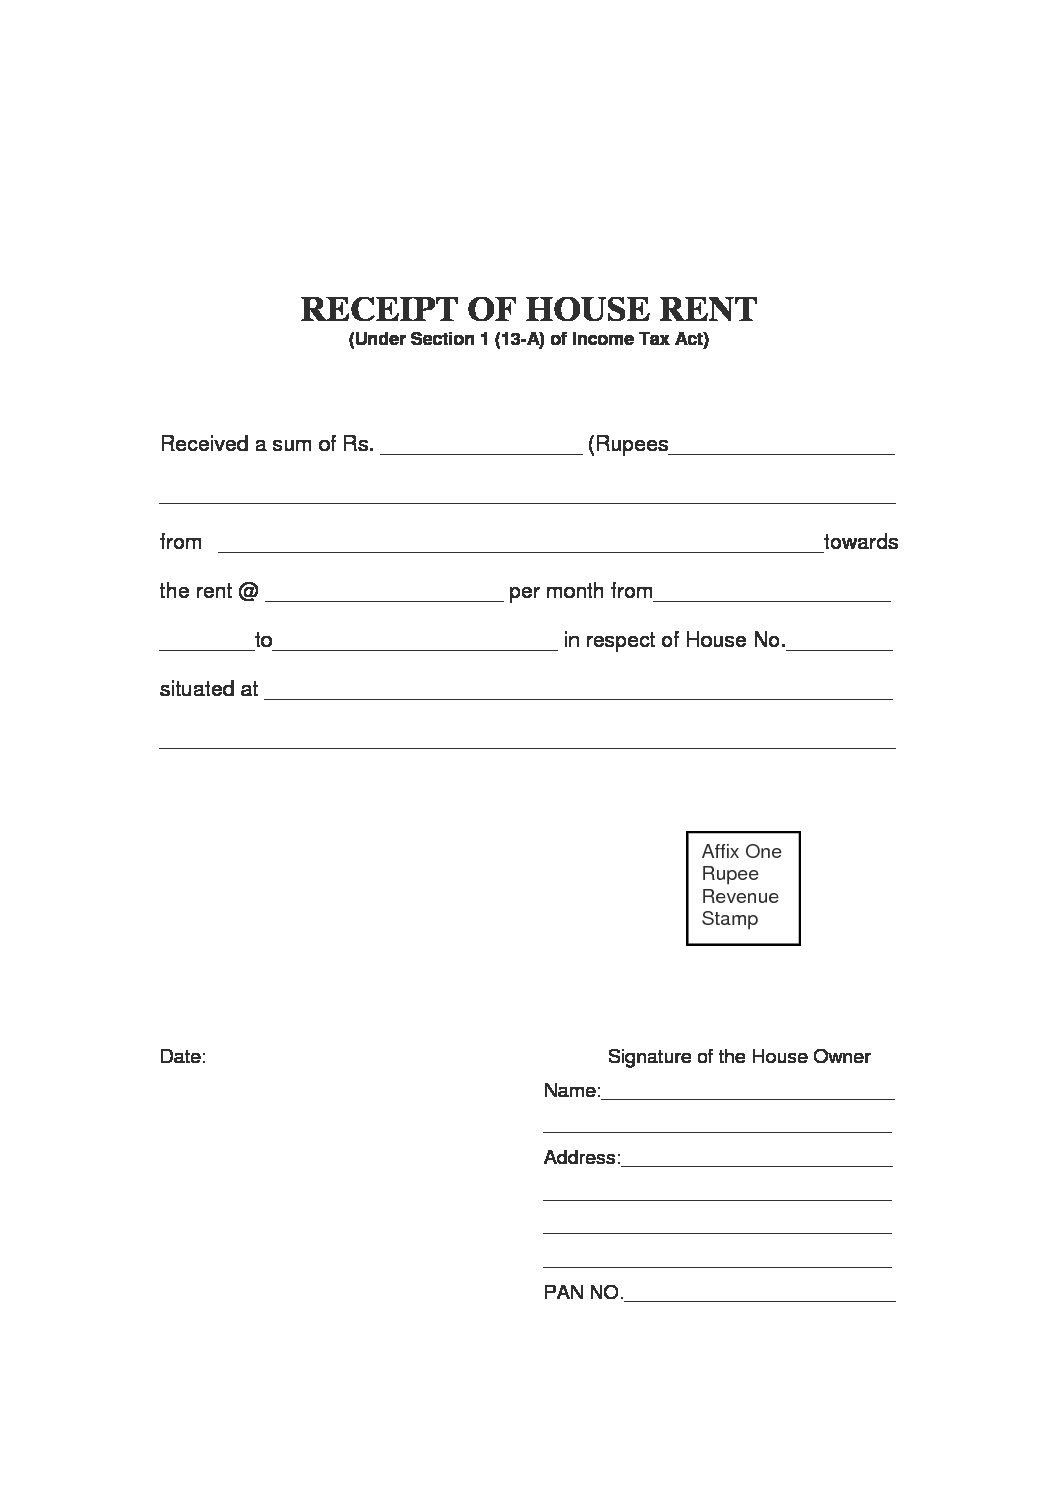 doc landlord rent receipt ontario landlord and tenant doc1380782 landlord rent receipt ontario landlord and tenant landlord rent receipt rent receipt template